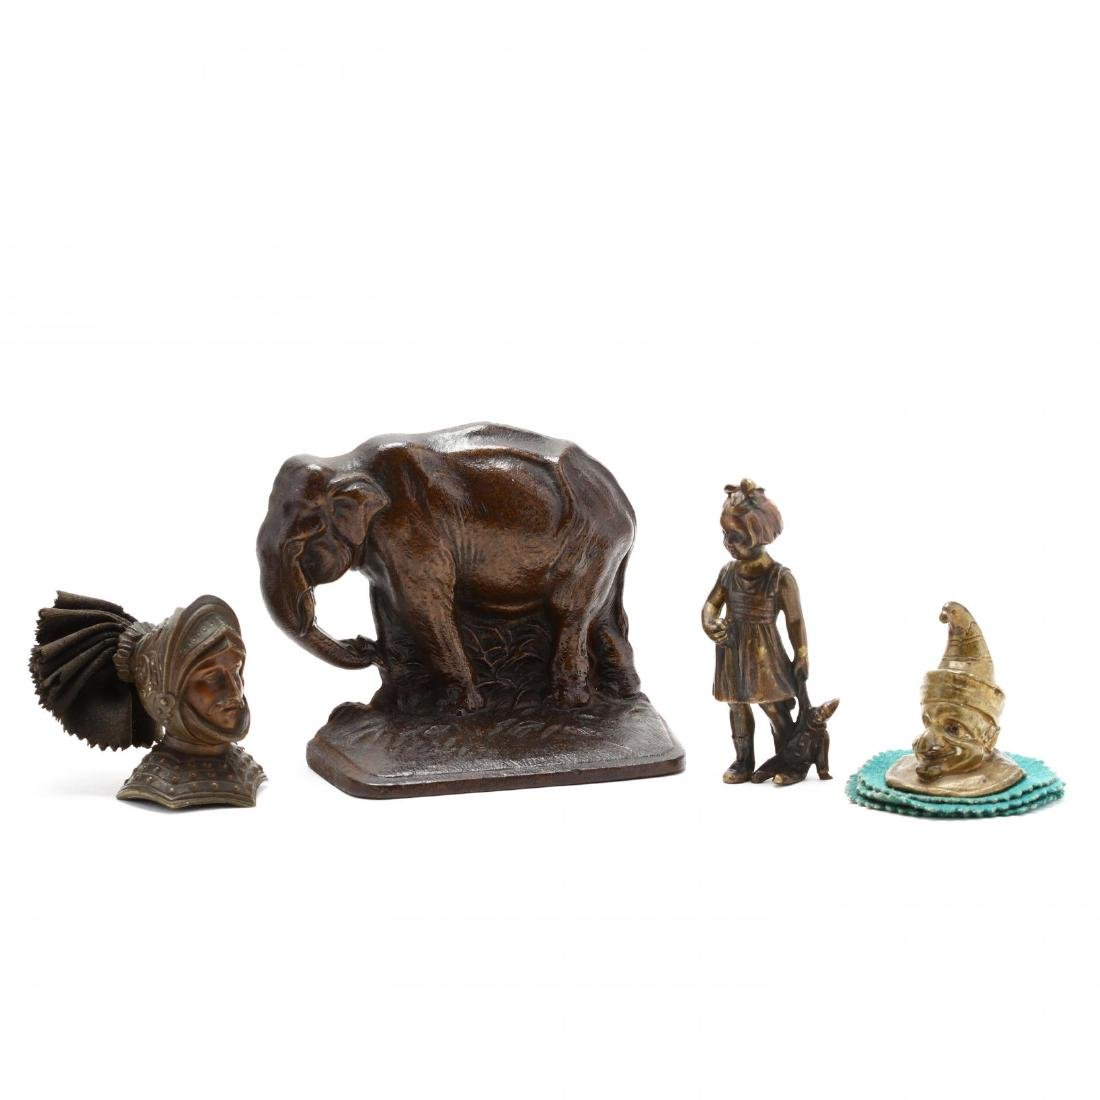 Vintage Iron and Bronze Desk Accessory Grouping